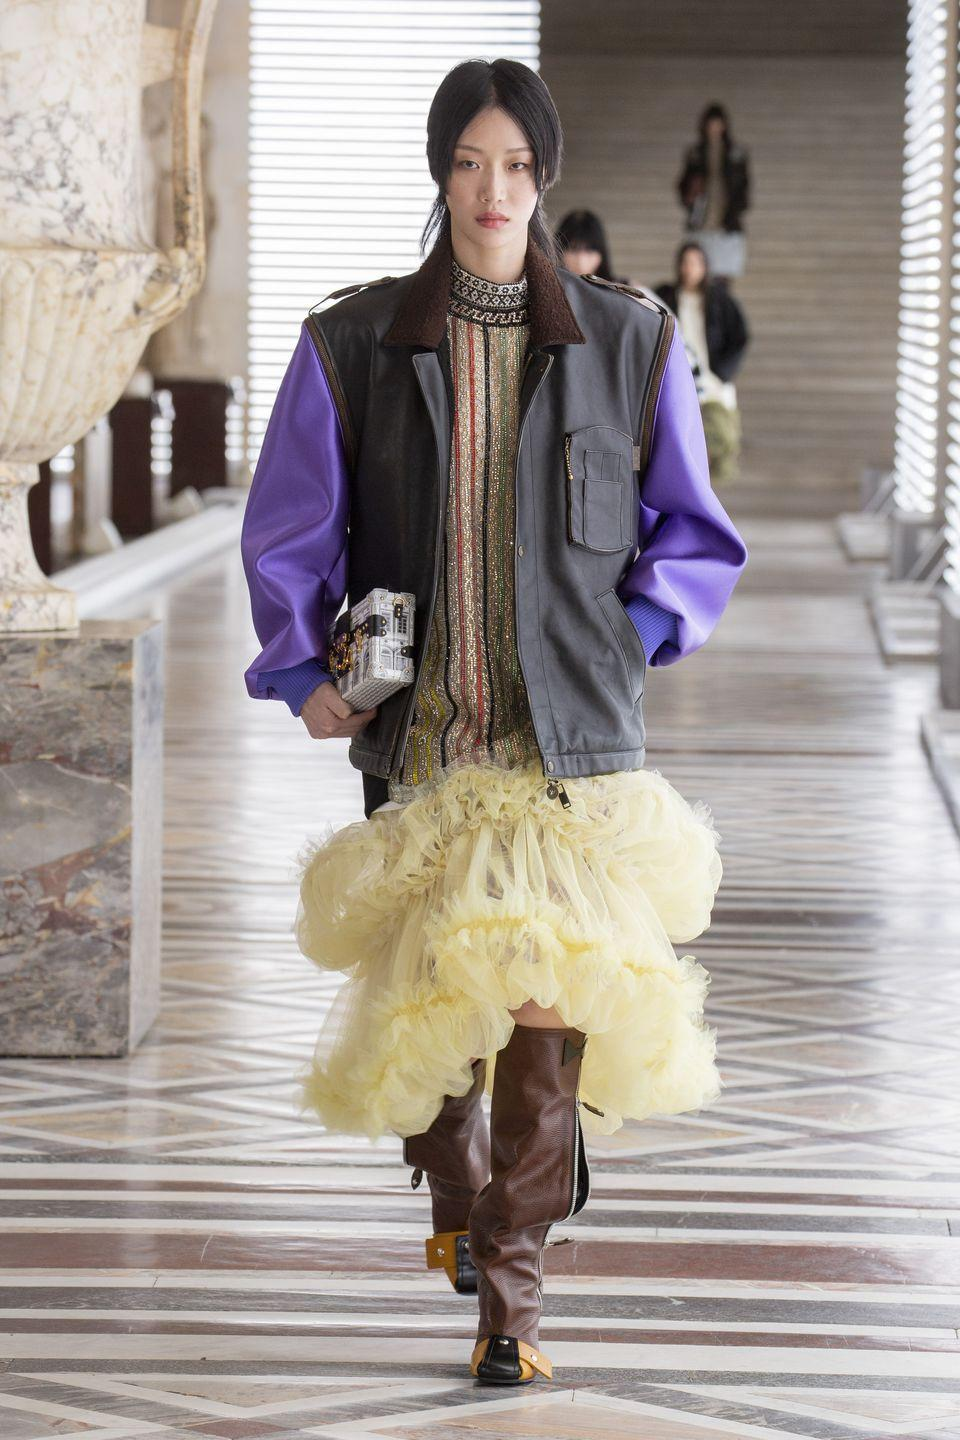 "<p>The Louis Vuitton autumn/winter 2021 collection – which was unveiled with a catwalk show in the galleries of the Louvre – was inspired by time travel and mythology, and featured a collaboration with Italian artistic design atelier Fornasetti.</p><p>""There's no need to venture far to create the impression of travelling,"" read the show notes. ""It's enough to reach far back… to the Golden Age, or Age of Enlightenment, eras that forged the essence of our civilisation. Everything is expressed so purely in Greco-Roman antiquity, the acme of an aesthetic whose primacy is uncontested. More than a journey, Louis Vuitton embarks on an odyssey with a AW21 collection that incorporates fabulous drawings by Fornasetti, the delicate, fanciful engravings of an enduring era. His imaginative strokes explore, illustrate and impart style.""</p><p><a href=""https://uk.louisvuitton.com/eng-gb/magazine/articles/women-fall-winter-2021-show-paris"" rel=""nofollow noopener"" target=""_blank"" data-ylk=""slk:Watch the show in full here."" class=""link rapid-noclick-resp"">Watch the show in full here.</a></p>"